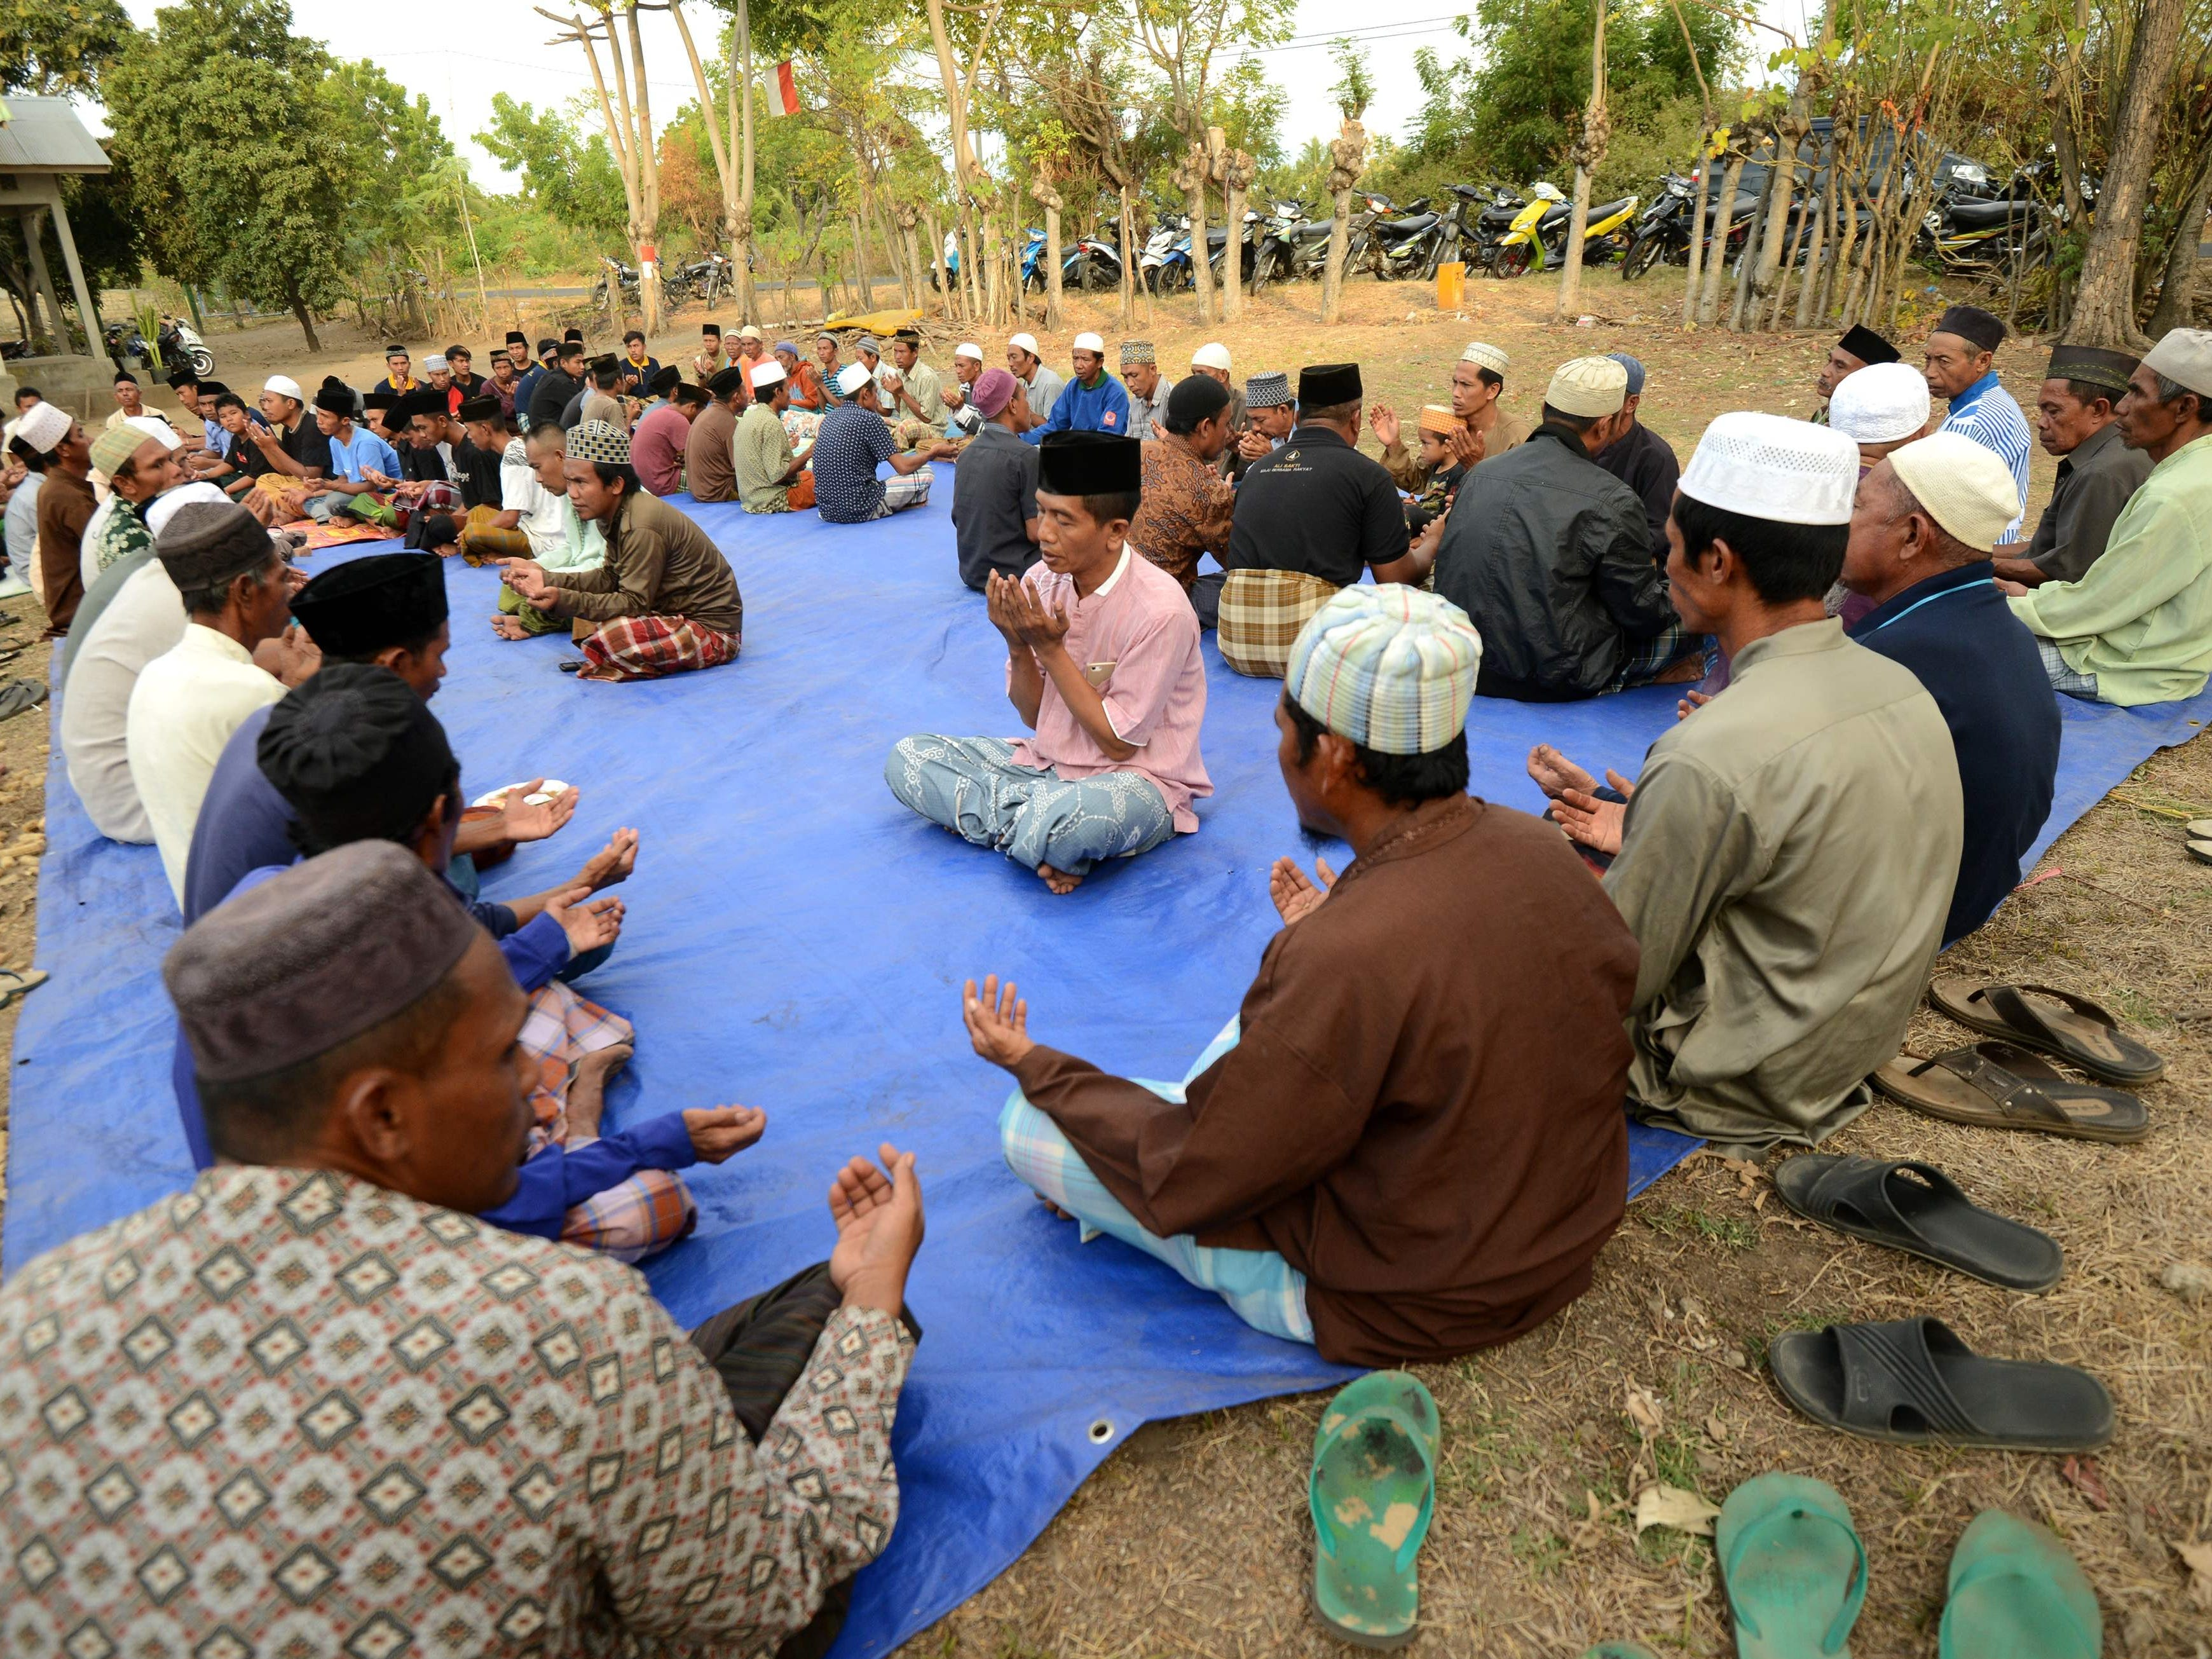 Villagers pray for their family victims at Kayangan subdistrict in North Lombok on West Nusa Tenggara province on Aug. 8, 2018, three days after an earthquake hit the area.